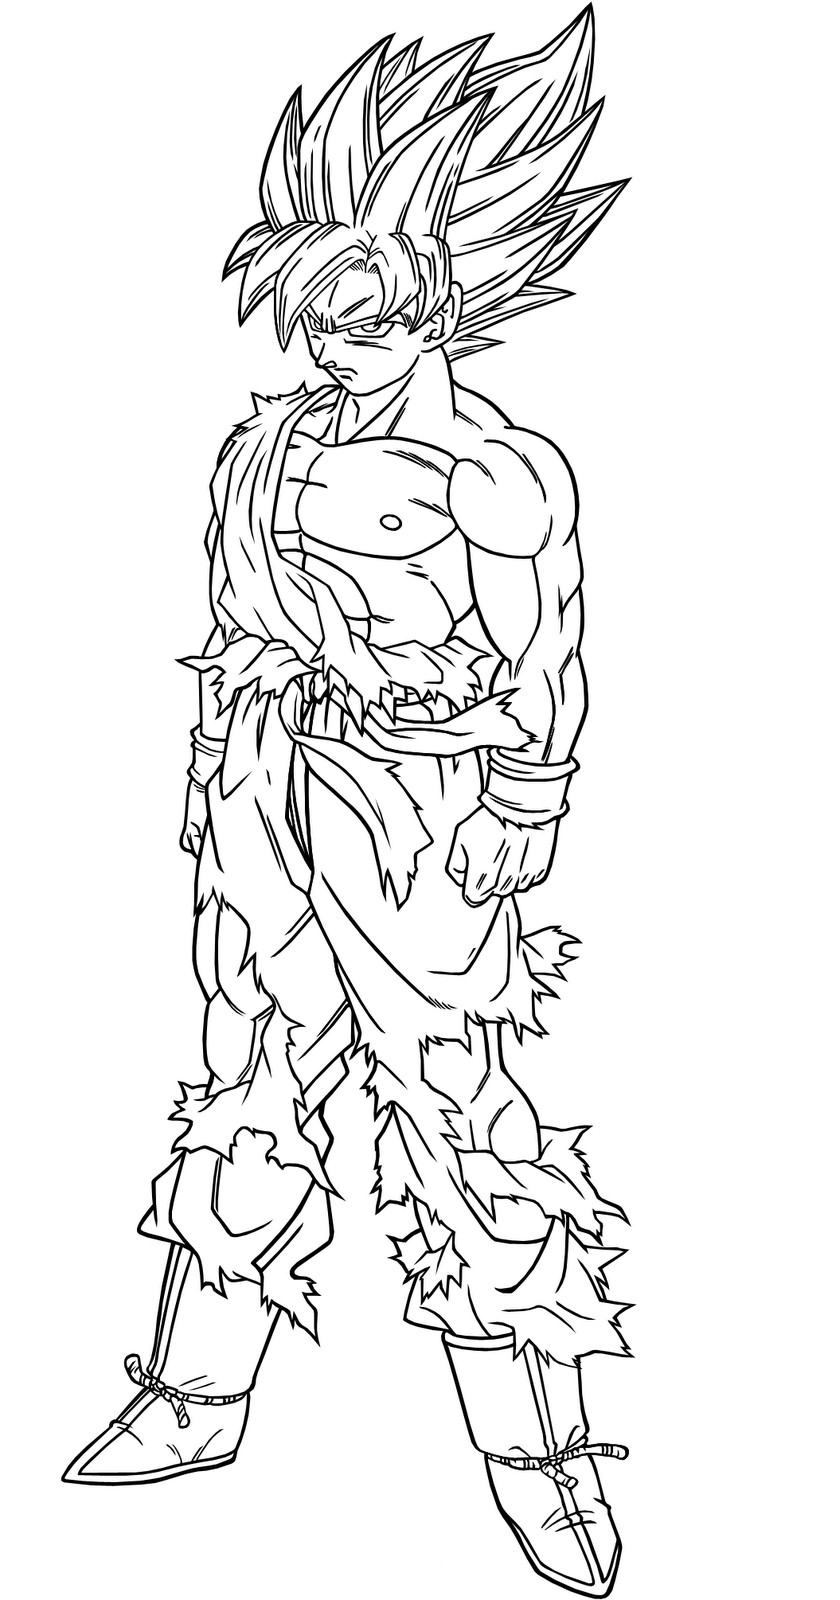 Dragon Coloring Pages For Girls  amazing Dragon ball z Coloring pages for kids boys and